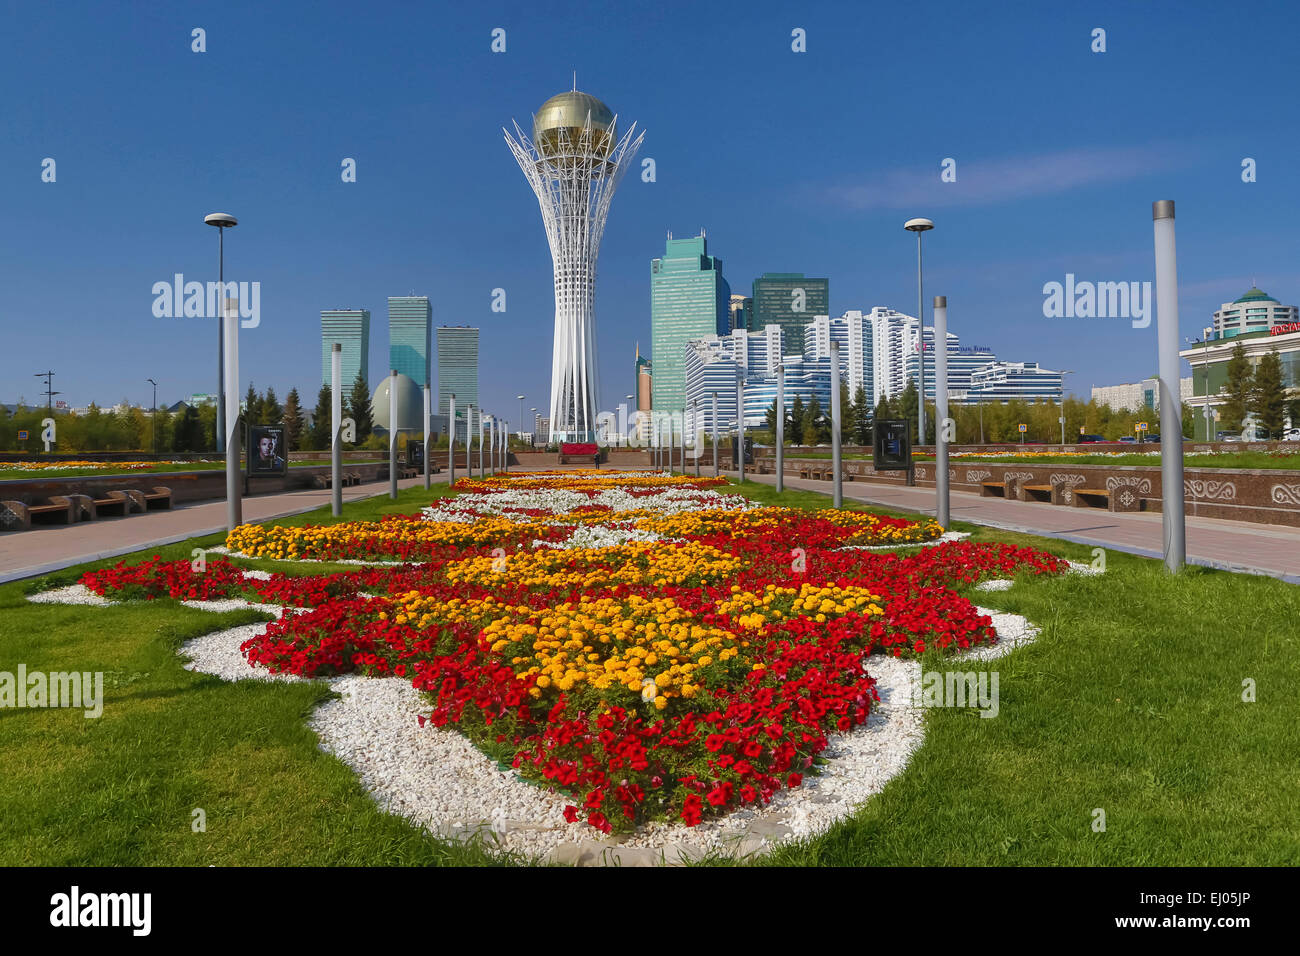 Astana Avenue Bayterek Boulevard City Flowers Plants Stock Royal